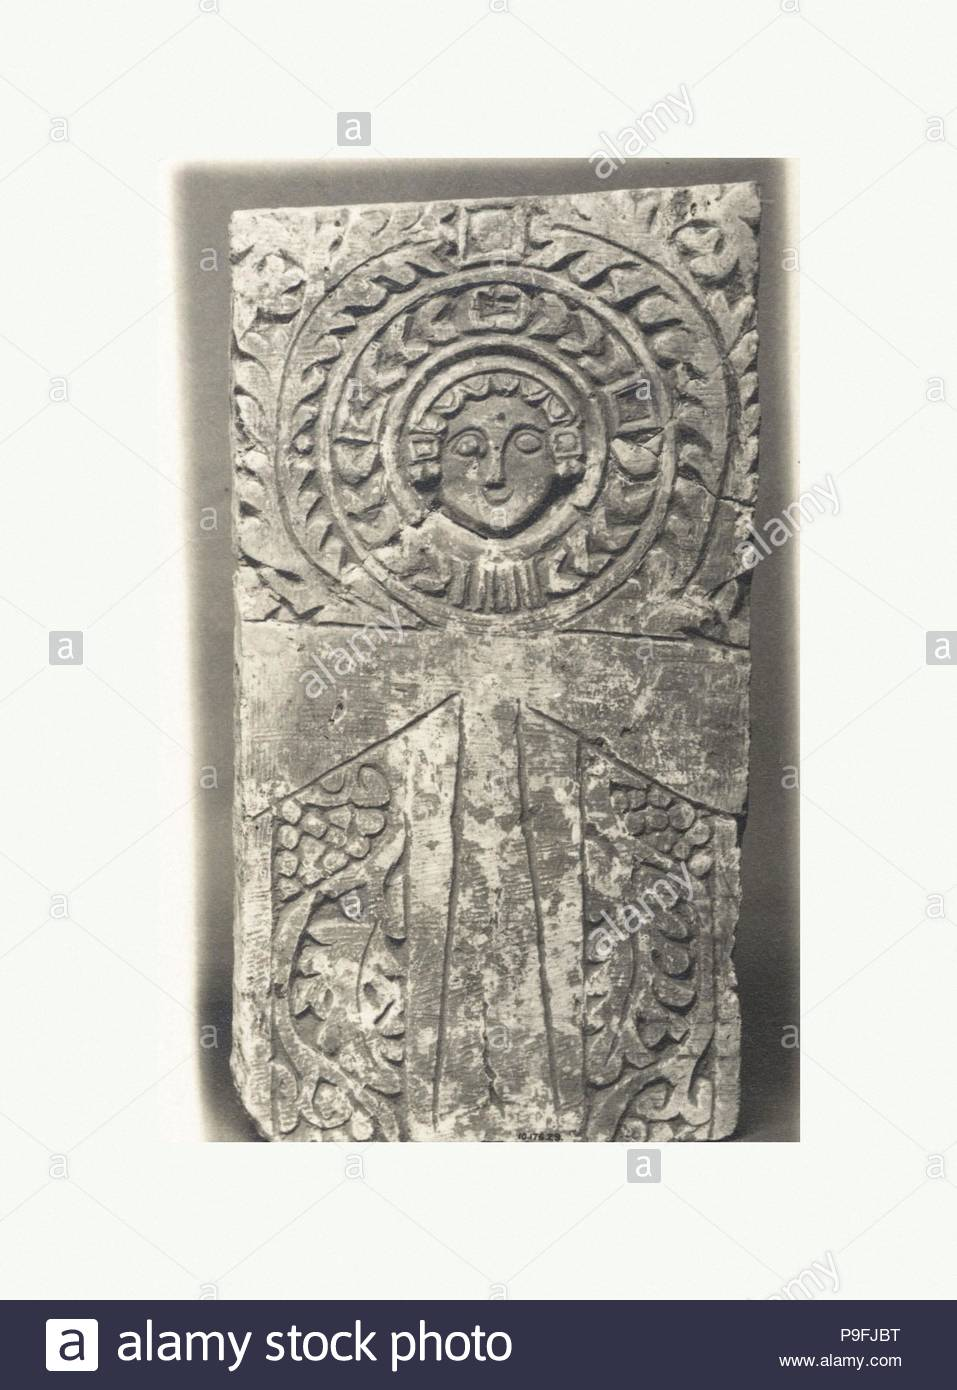 Funerary Stele With Ankh Looped Cross Featuring A Human Face At